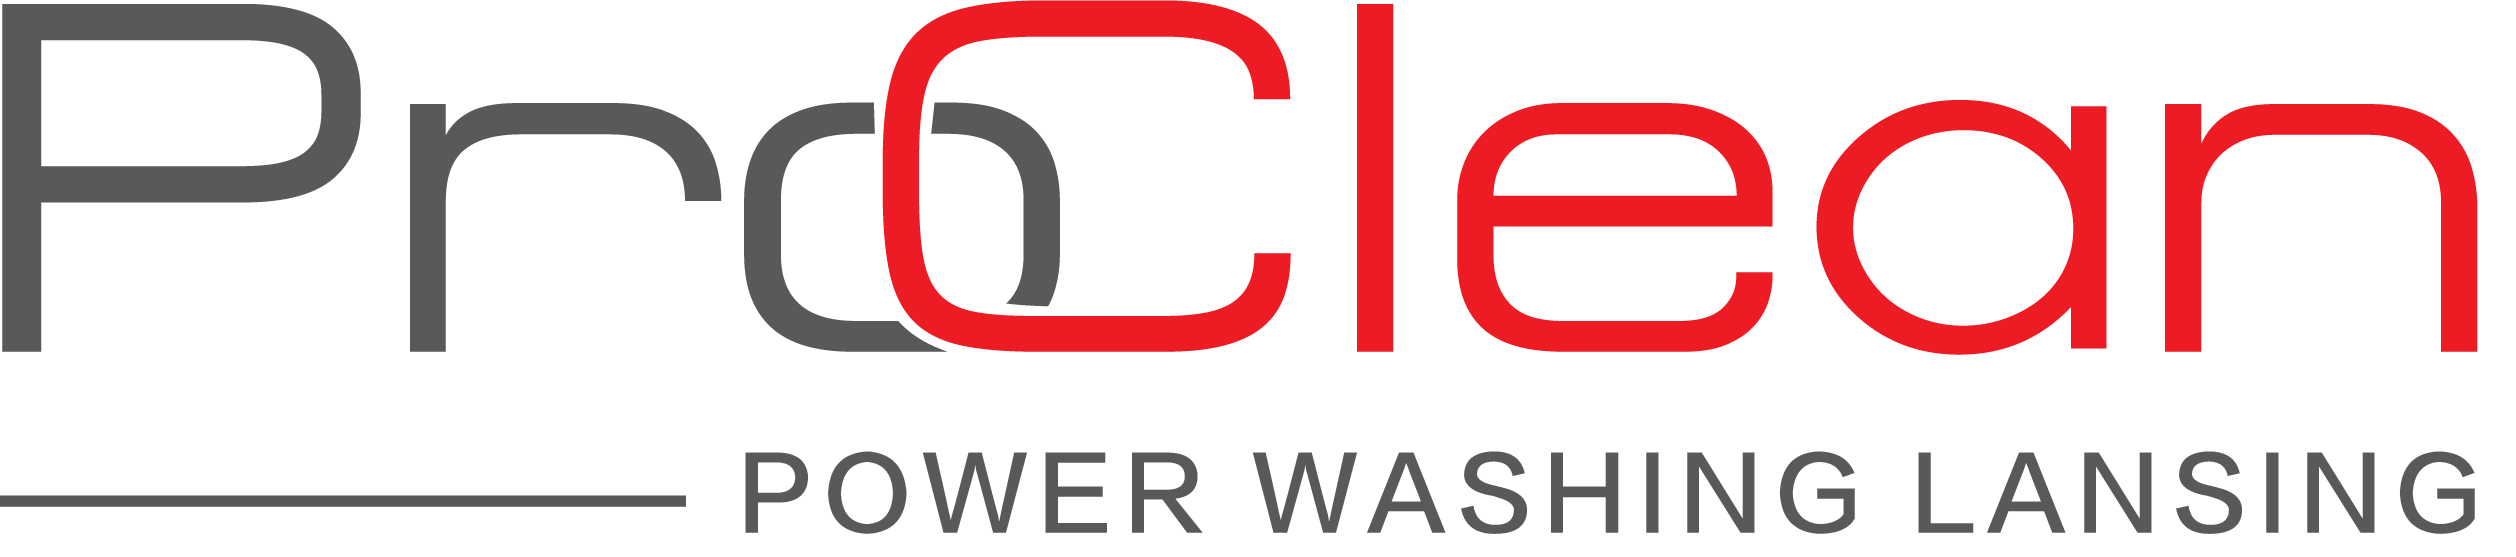 ProClean Power Washing Lansing Branded Logo